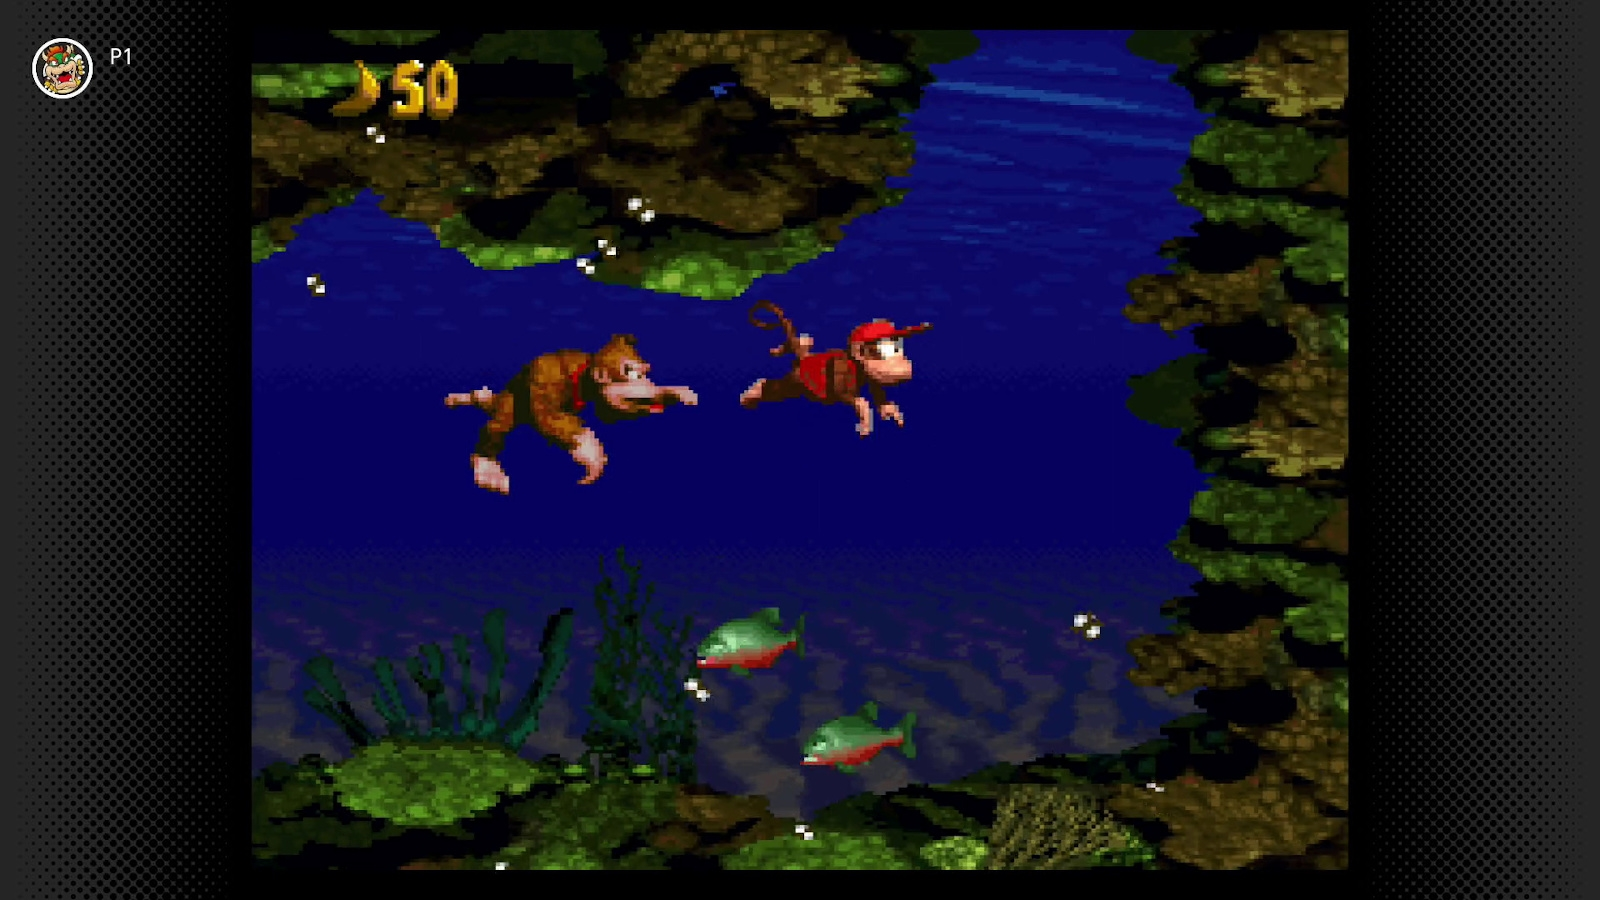 Nintendo Switch Online is adding 'Donkey Kong Country' this month | DeviceDaily.com